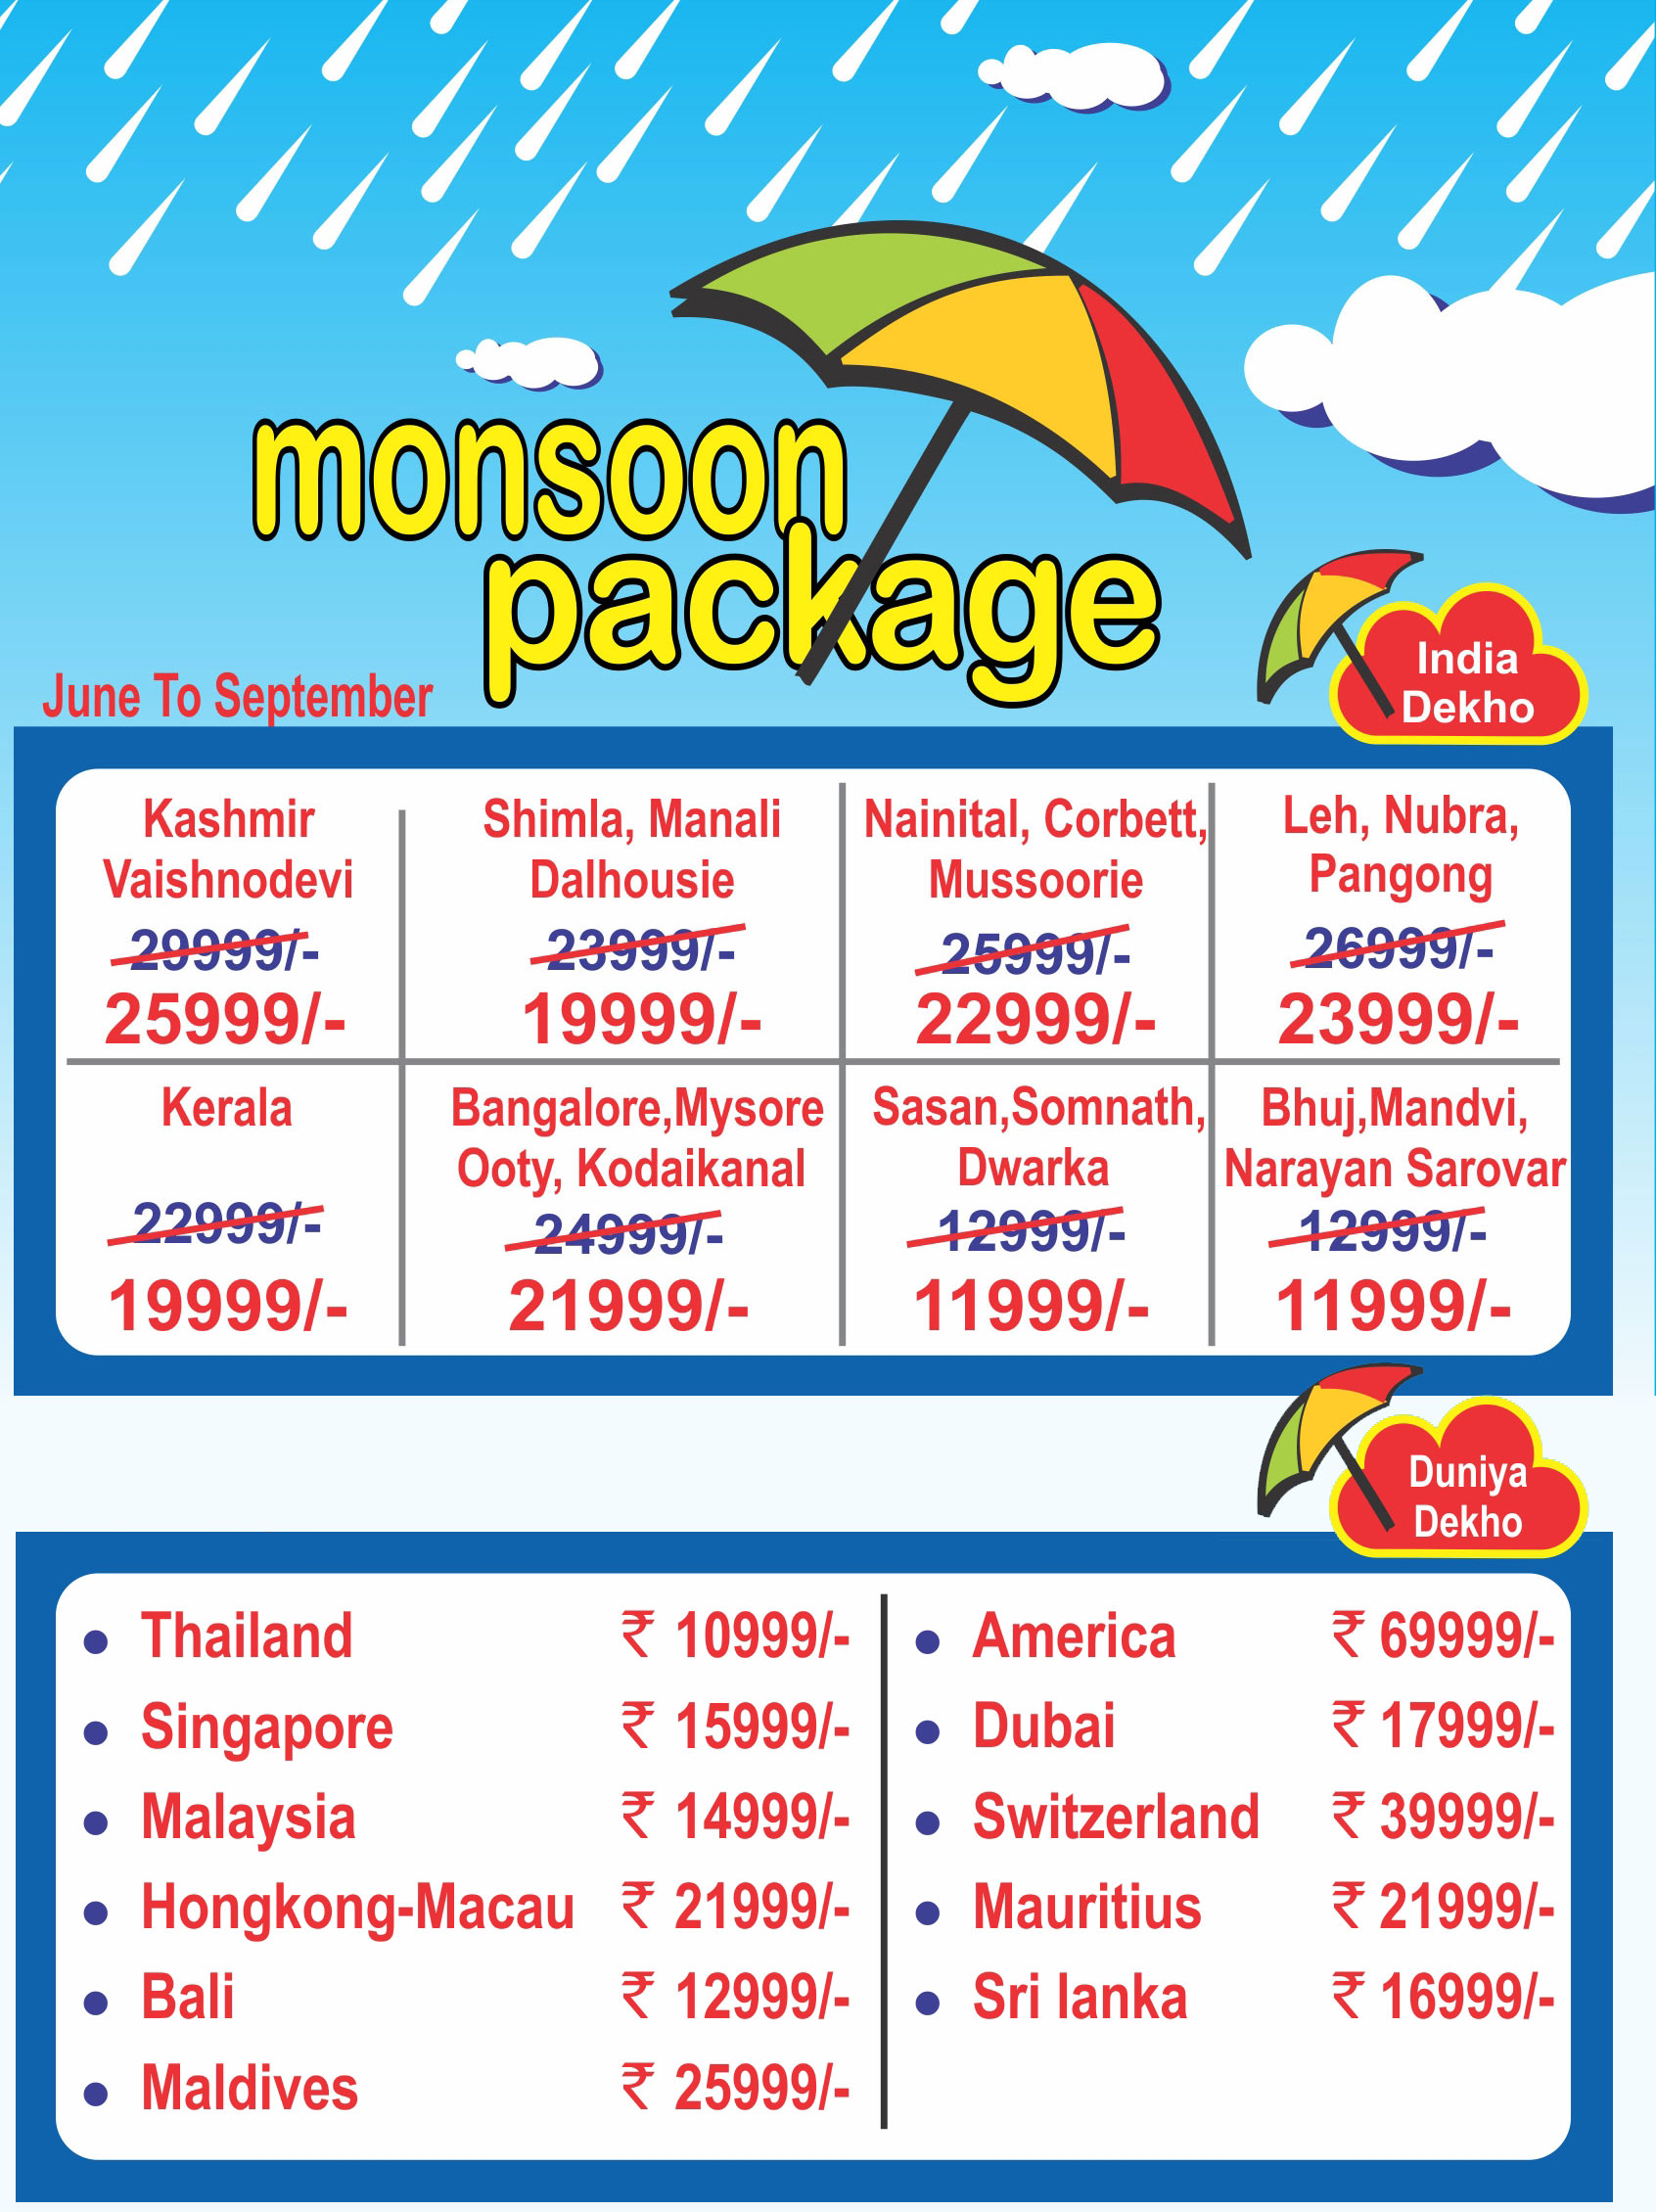 Monsoon Packages for India and International